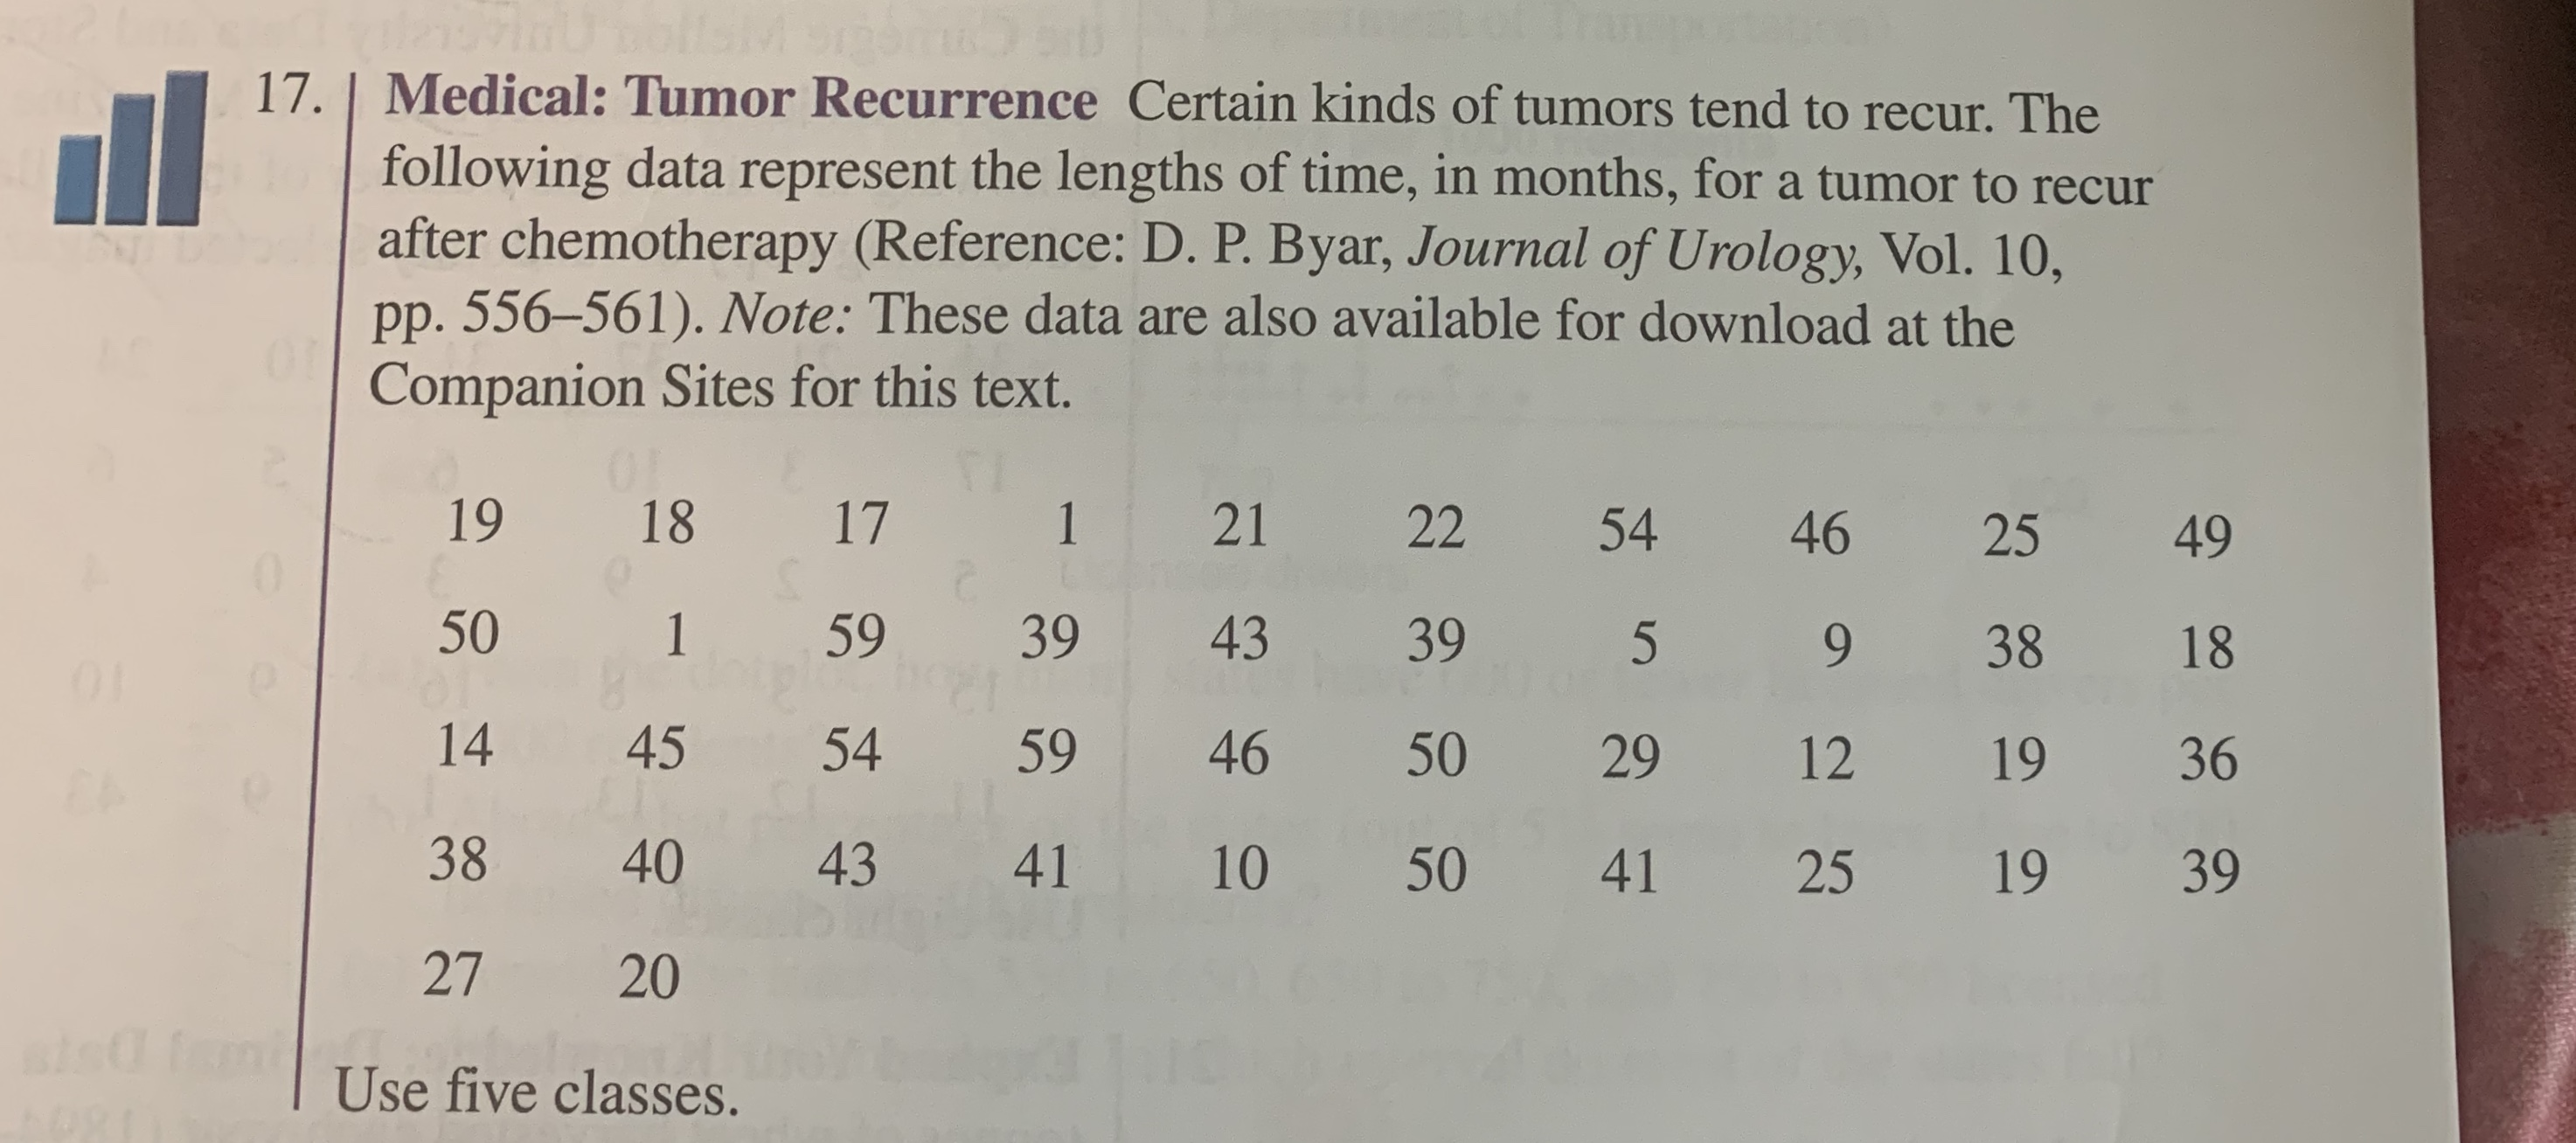 laisthaU tollM 17.   Medical: Tumor Recurrence Certain kinds of tumors tend to recur. The following data represent the lengths of time, in months, for a tumor to recur after chemotherapy (Reference: D. P. Byar, Journal of Urology, Vol. 10, pp. 556-561). Note: These data are also available for download at the Companion Sites for this text. T7 1 17 OF 18 19 21 22 54 46 25 49 50 1 59 39 43 39 5 38 18 01 45 54 59 46 50 29 12 36 19 38 40 43 41 10 50 41 25 39 27 20 ats Tse five classes. 081